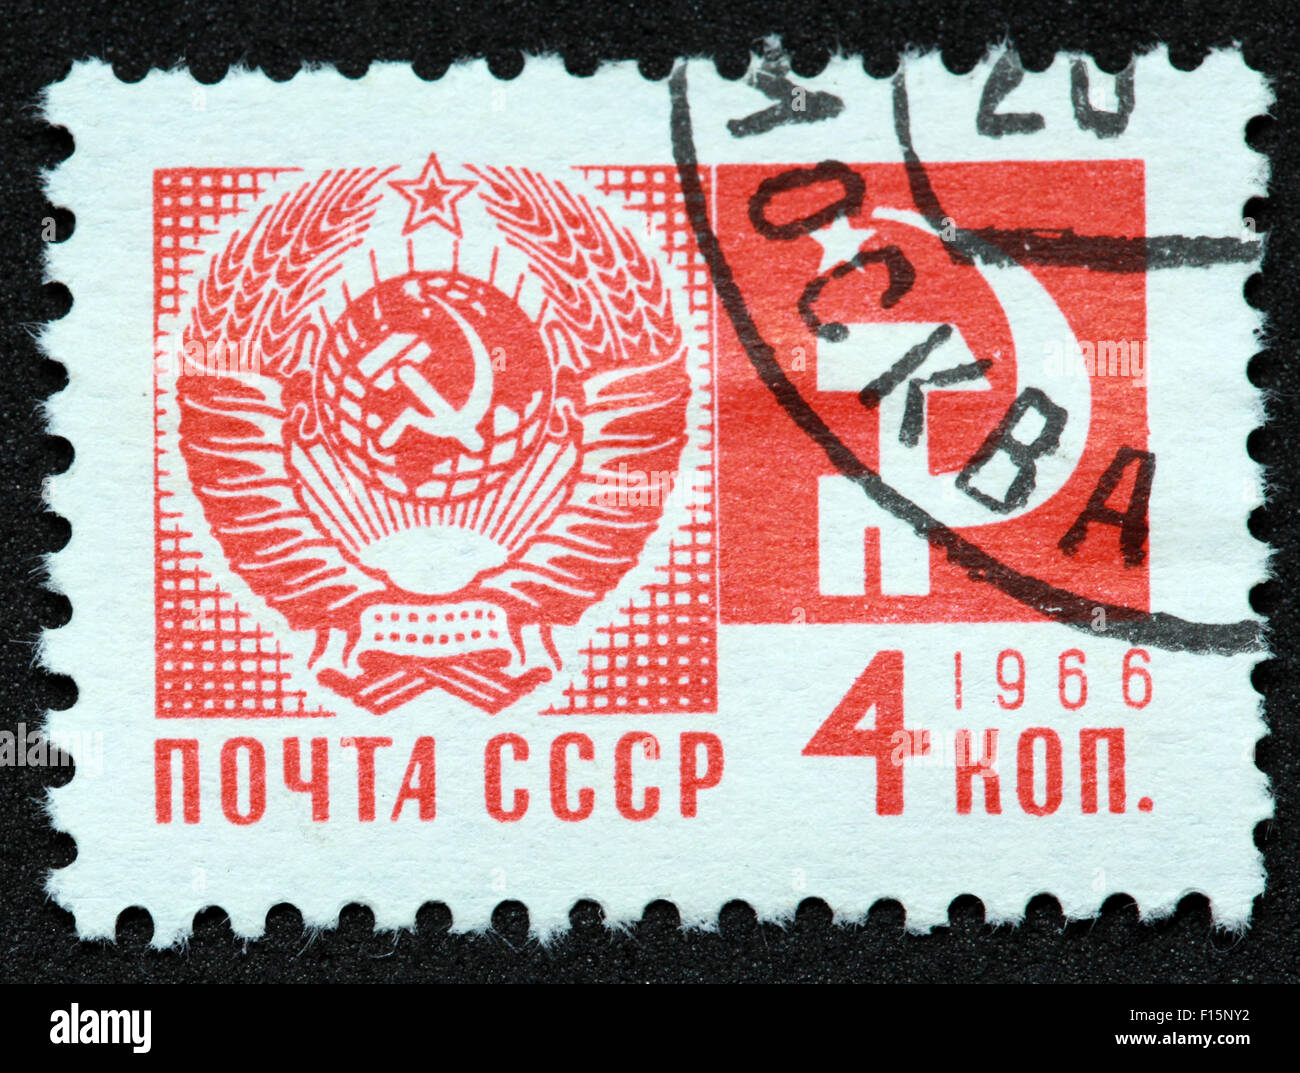 4 Kon Kopek Mockba 1966 space Stamp - Stock Image